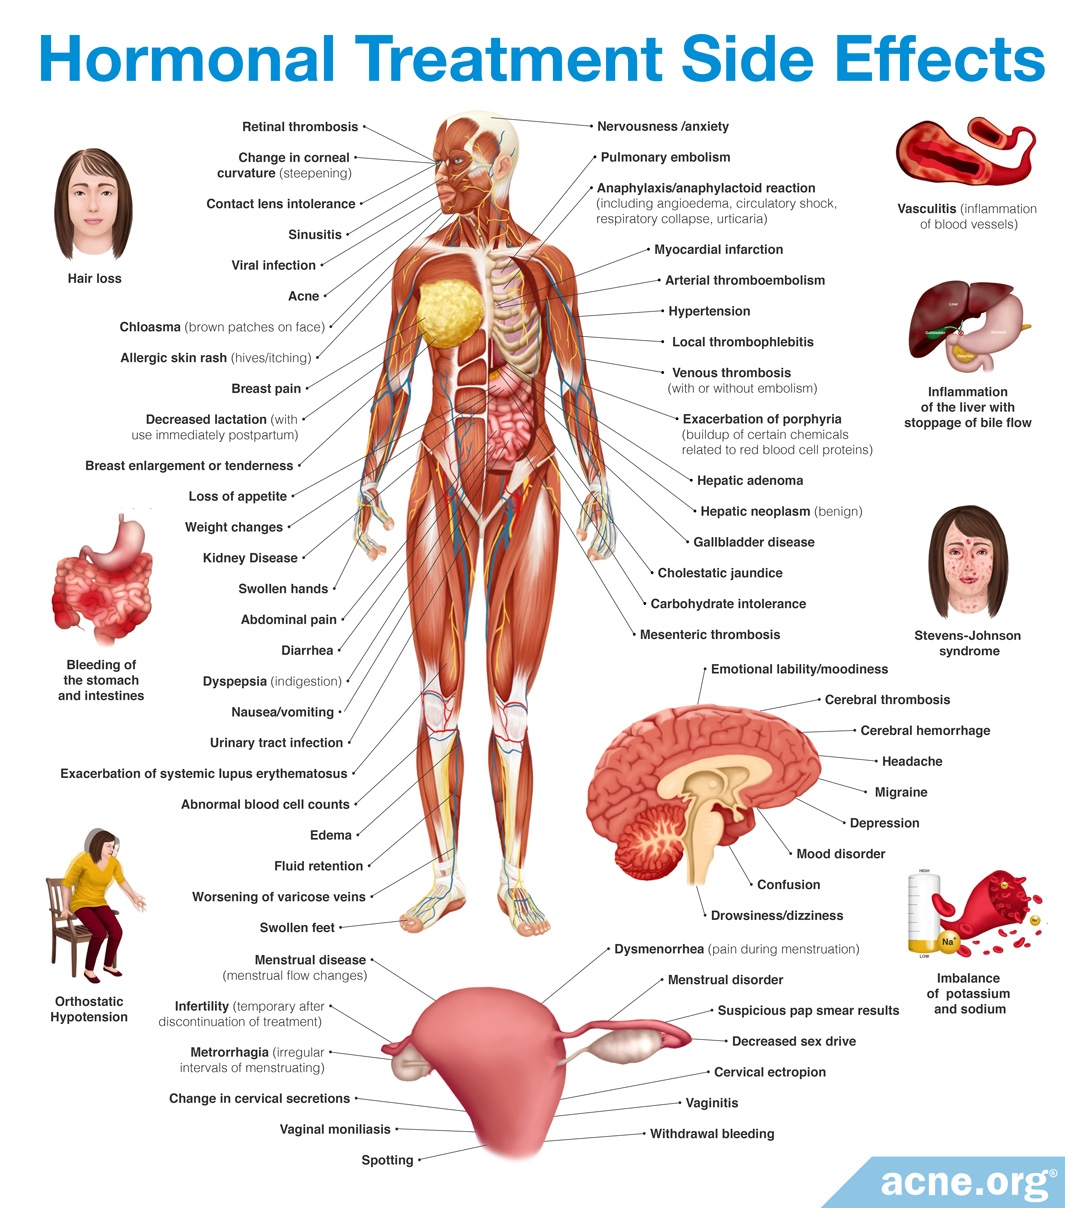 Side Effects of Hormonal Treatment